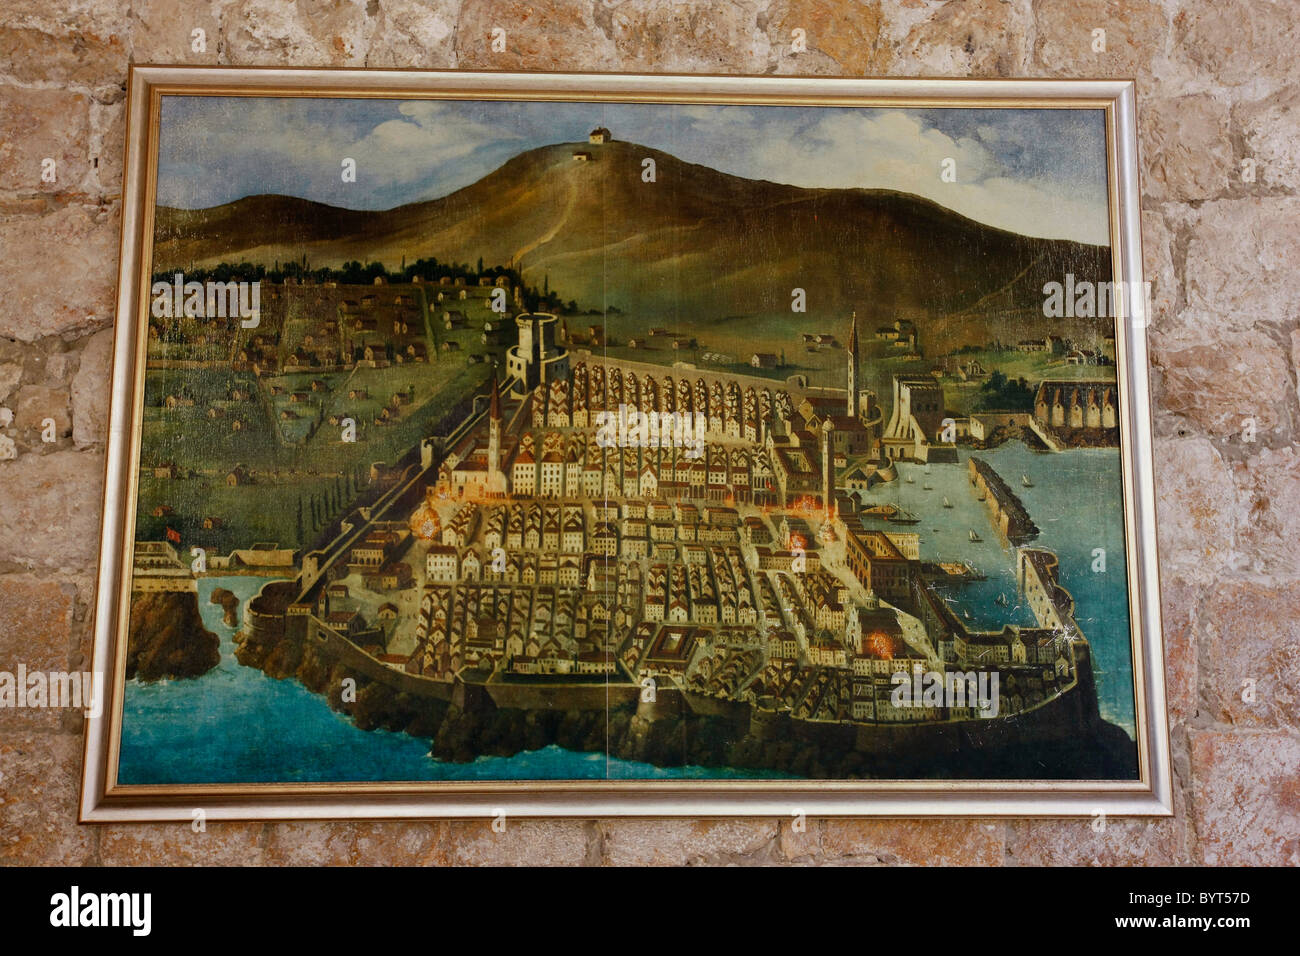 Old map of dubrovnik croatia stock photo 34337057 alamy old map of dubrovnik croatia gumiabroncs Gallery